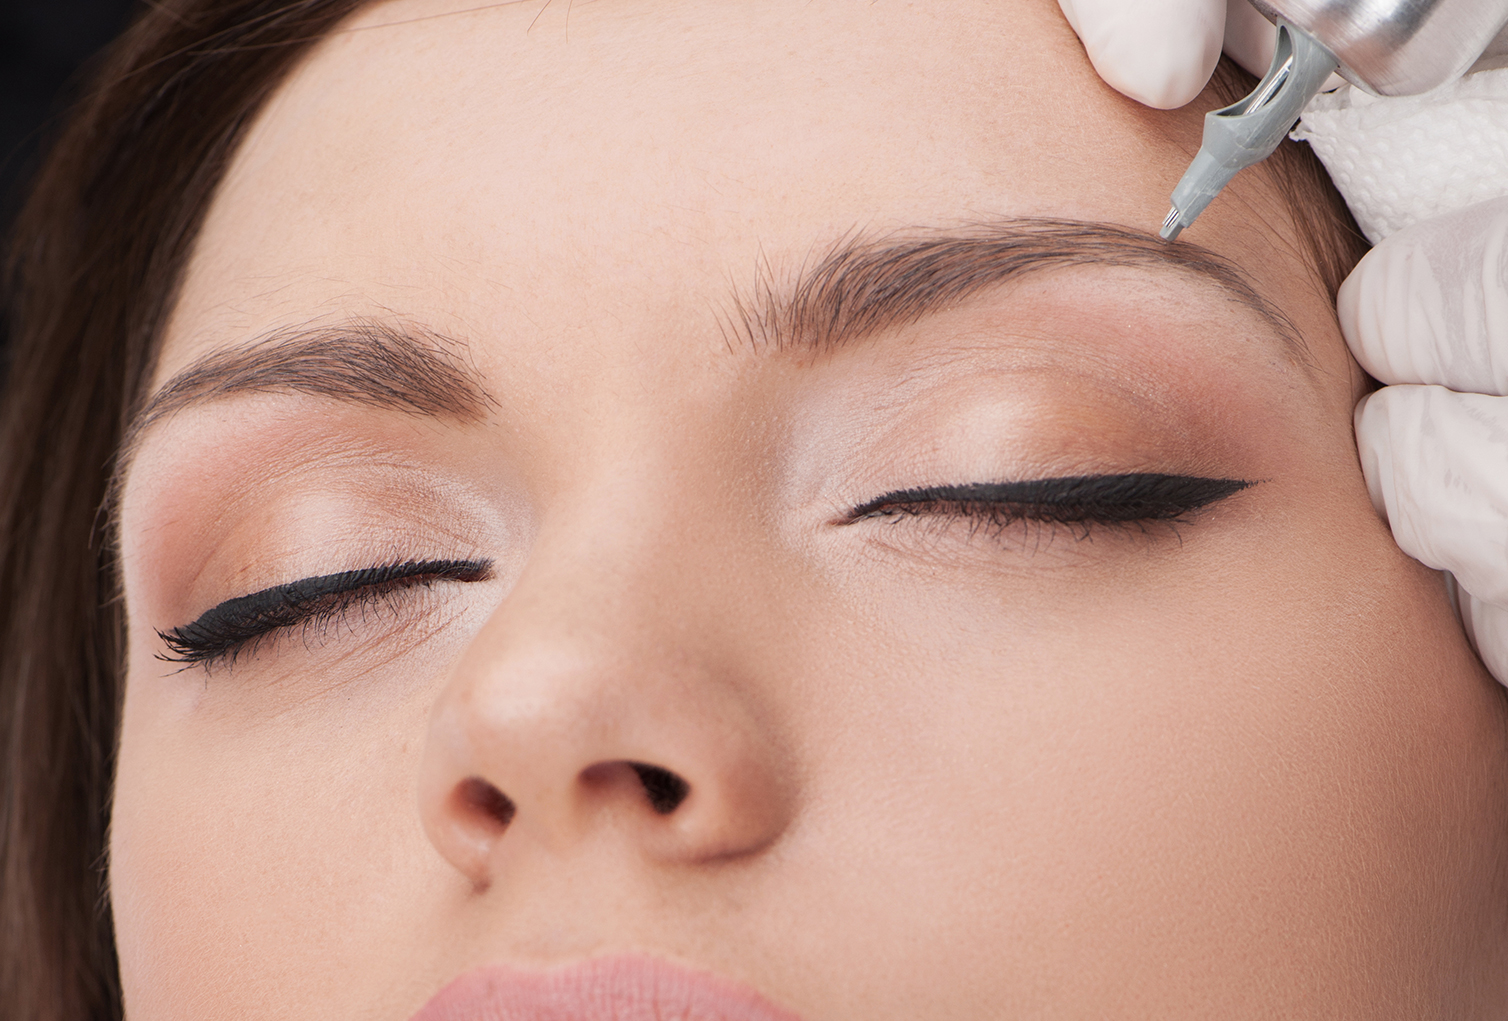 Trending: Microblading For Your Perfectly Shaped Eyebrows